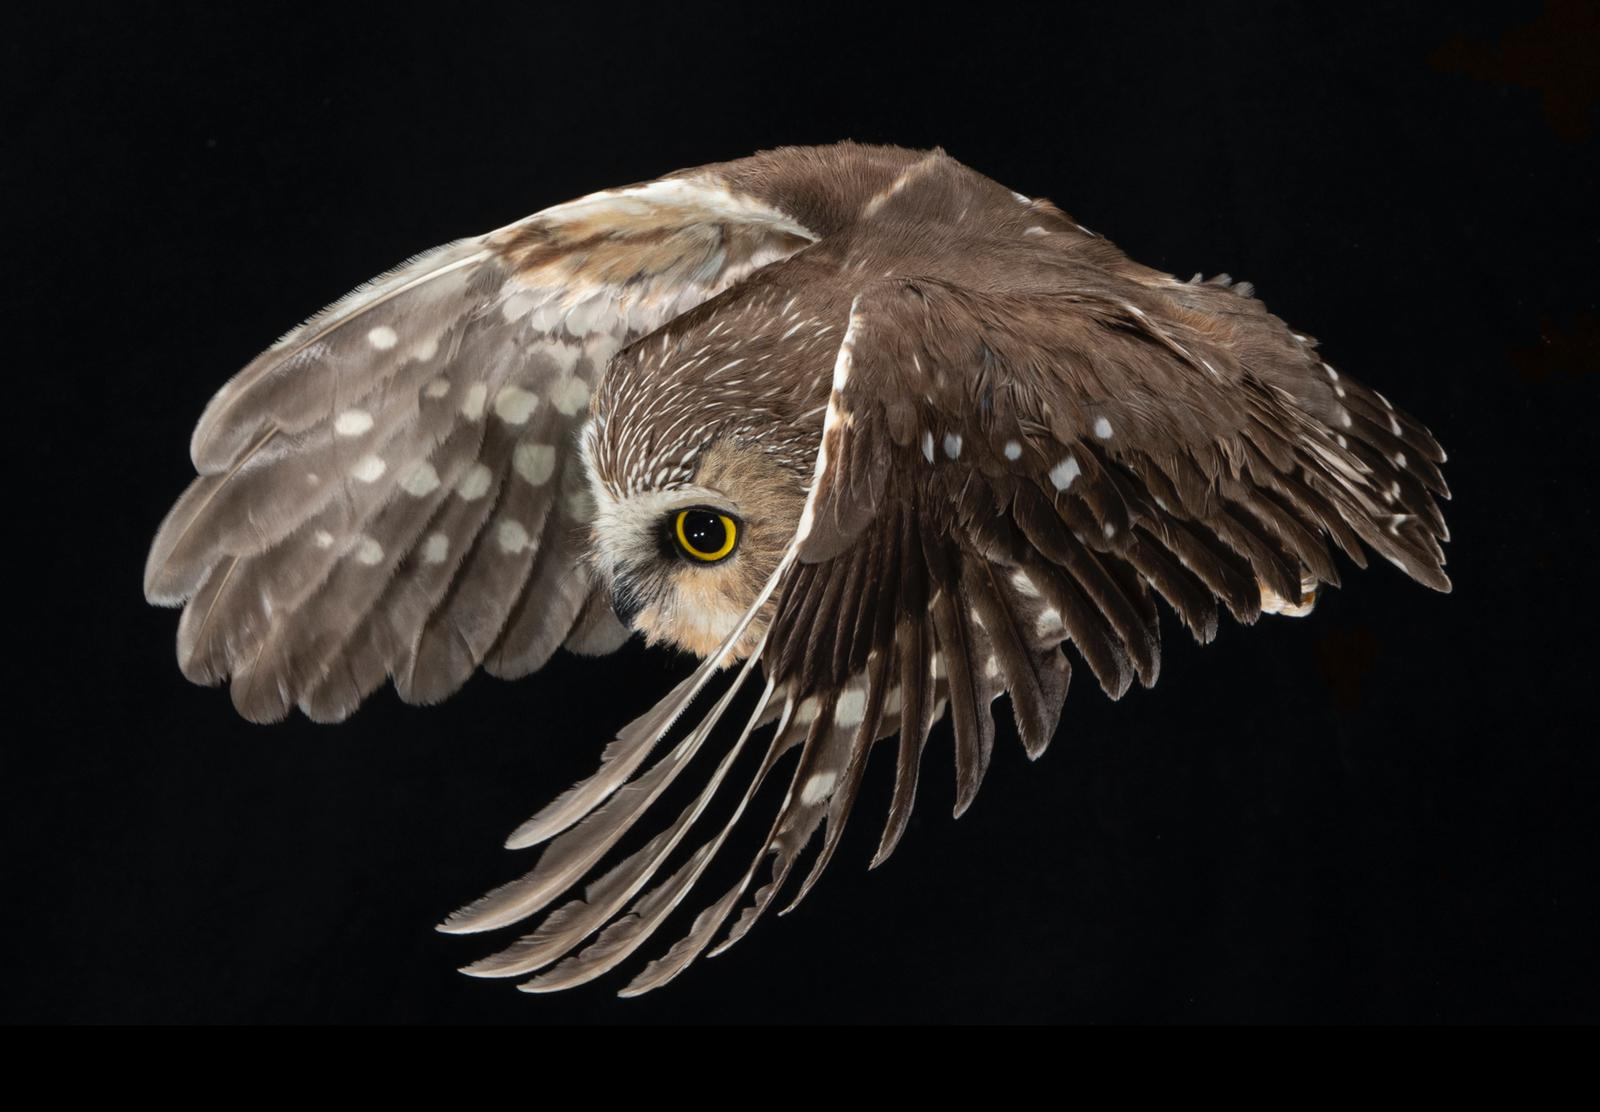 Learn about the results from 20 years of monitoring nocturnal owls in Atlantic Canada.